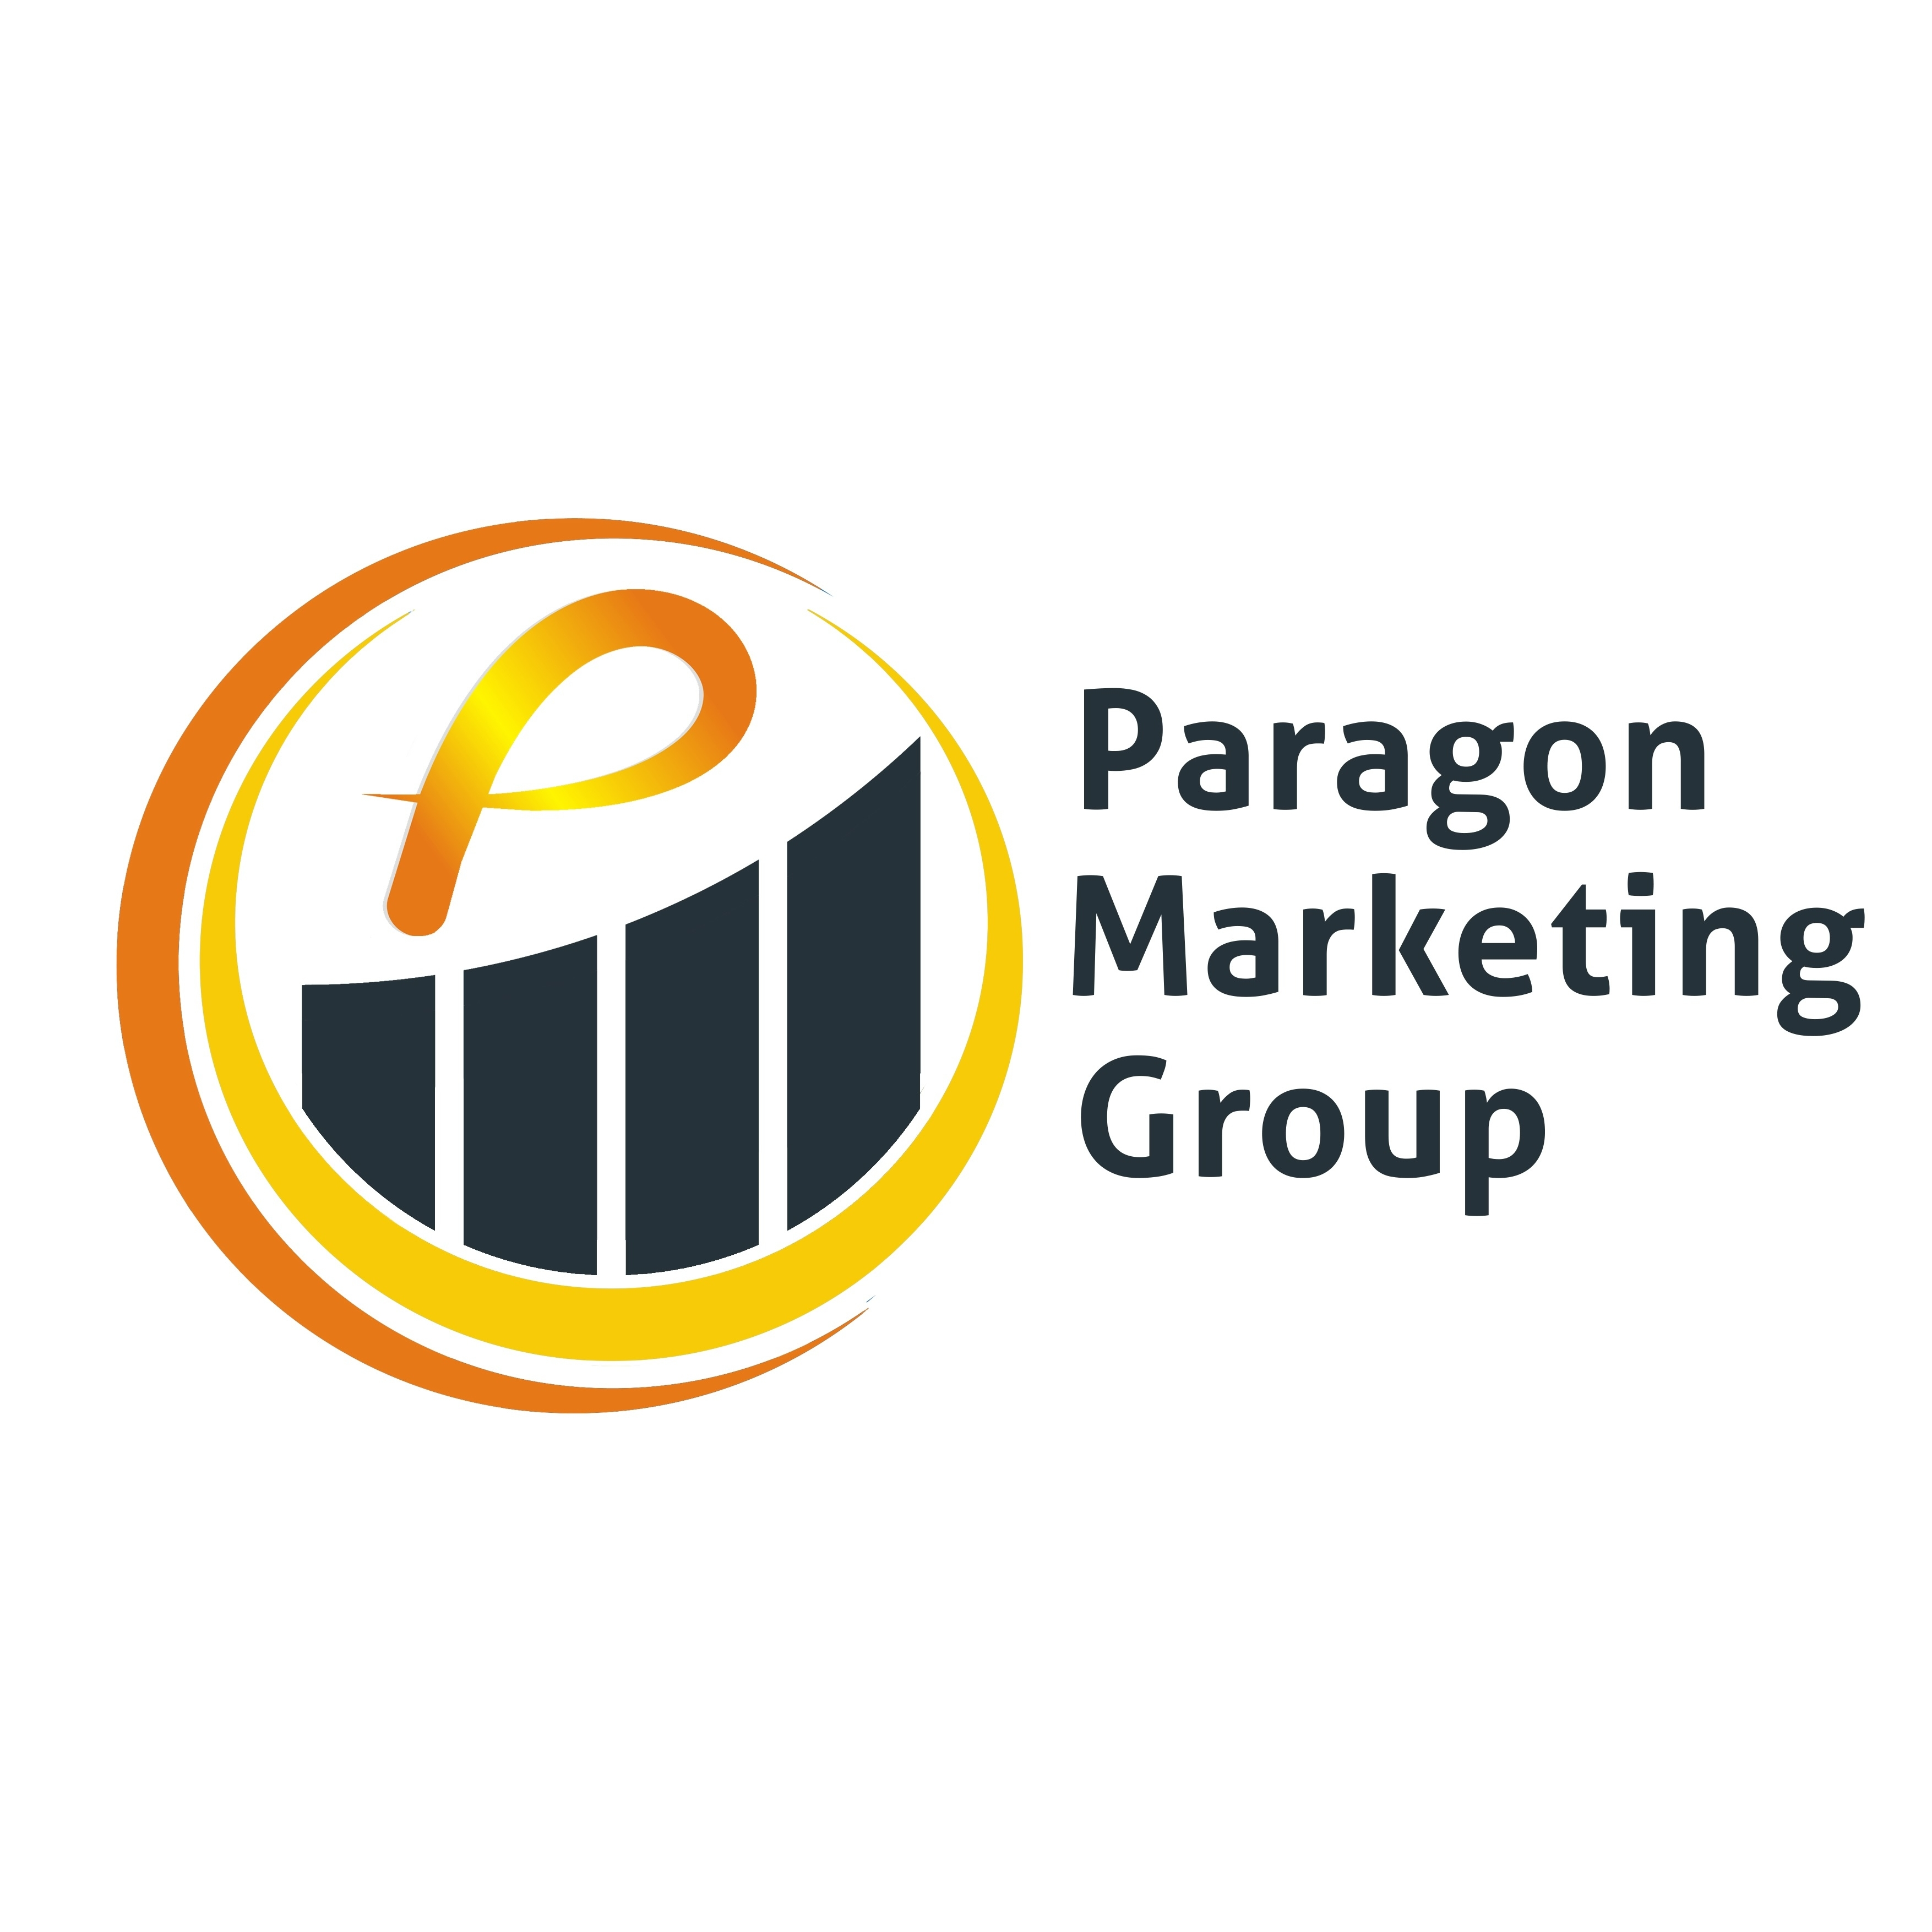 image of Paragon Marketing Group